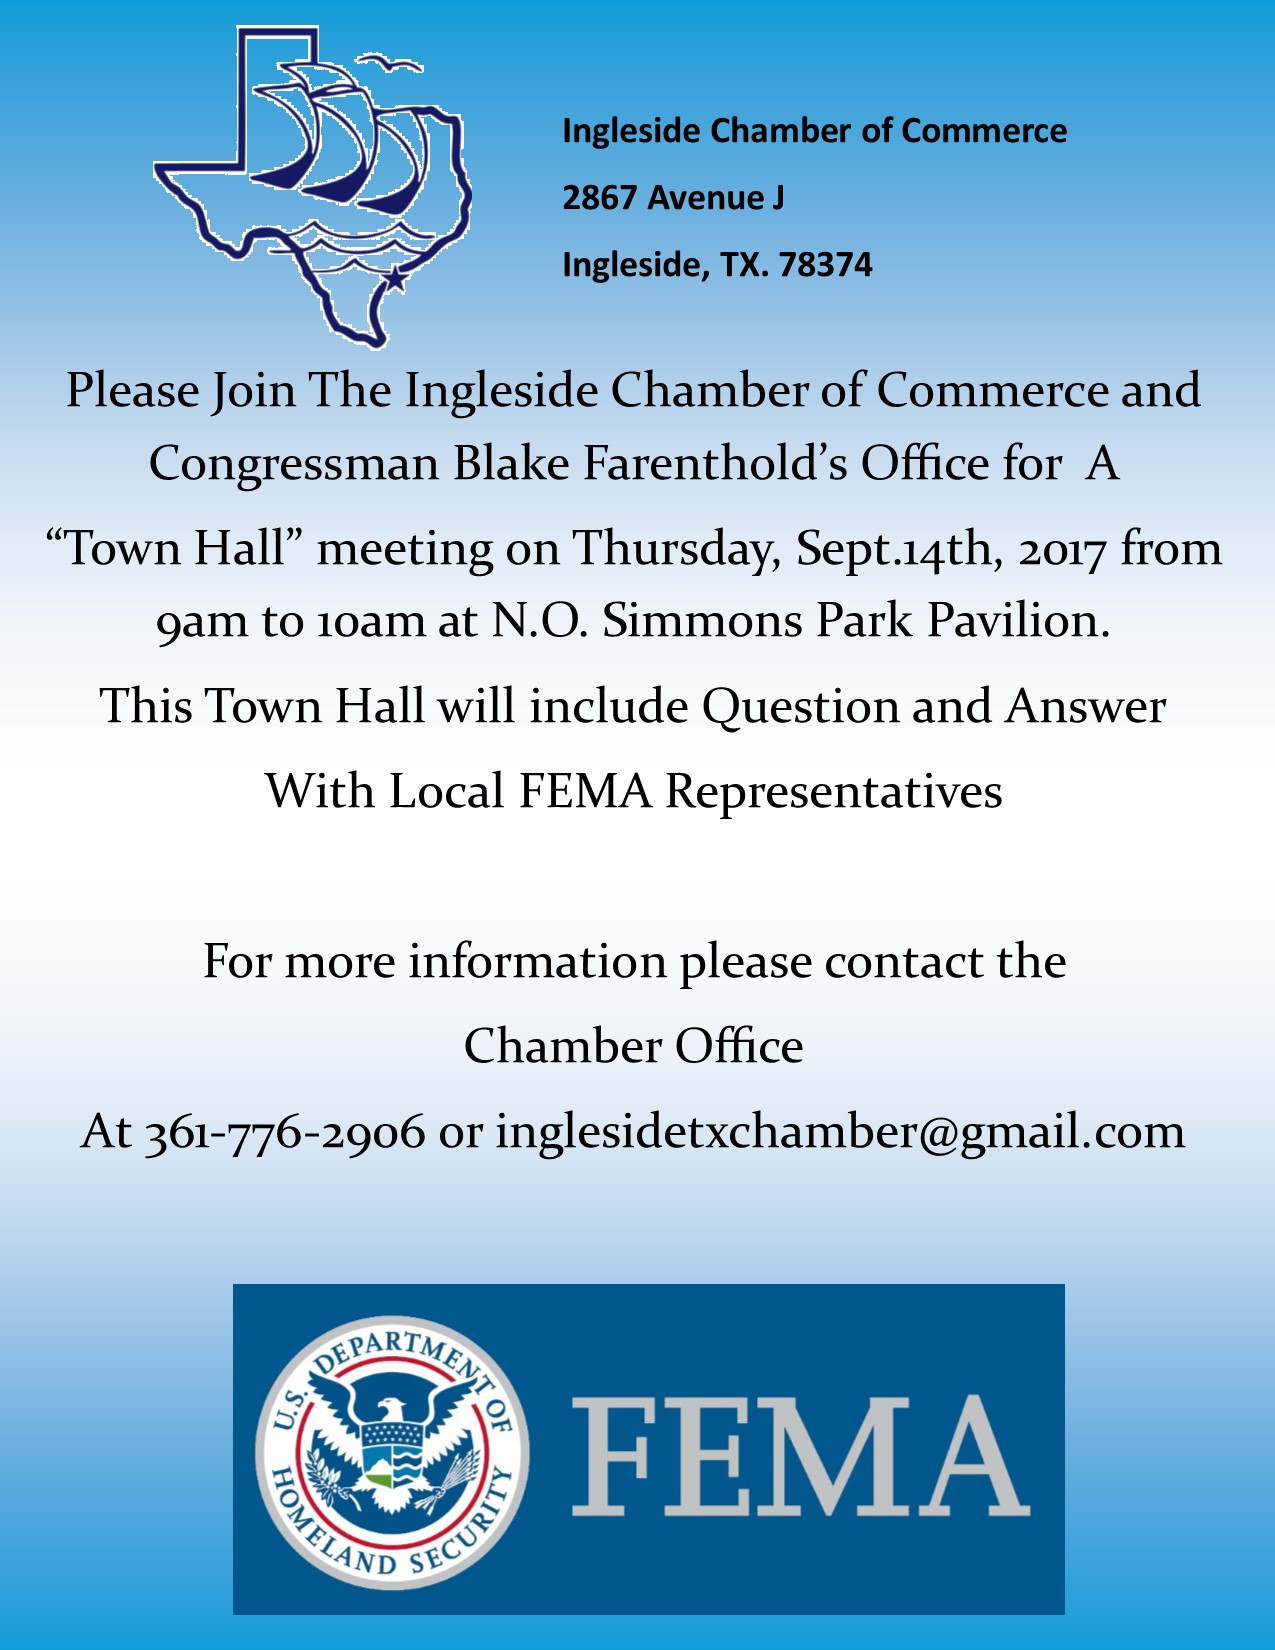 town hall meeting September 14 9 a.m. at N.O. Simmons park